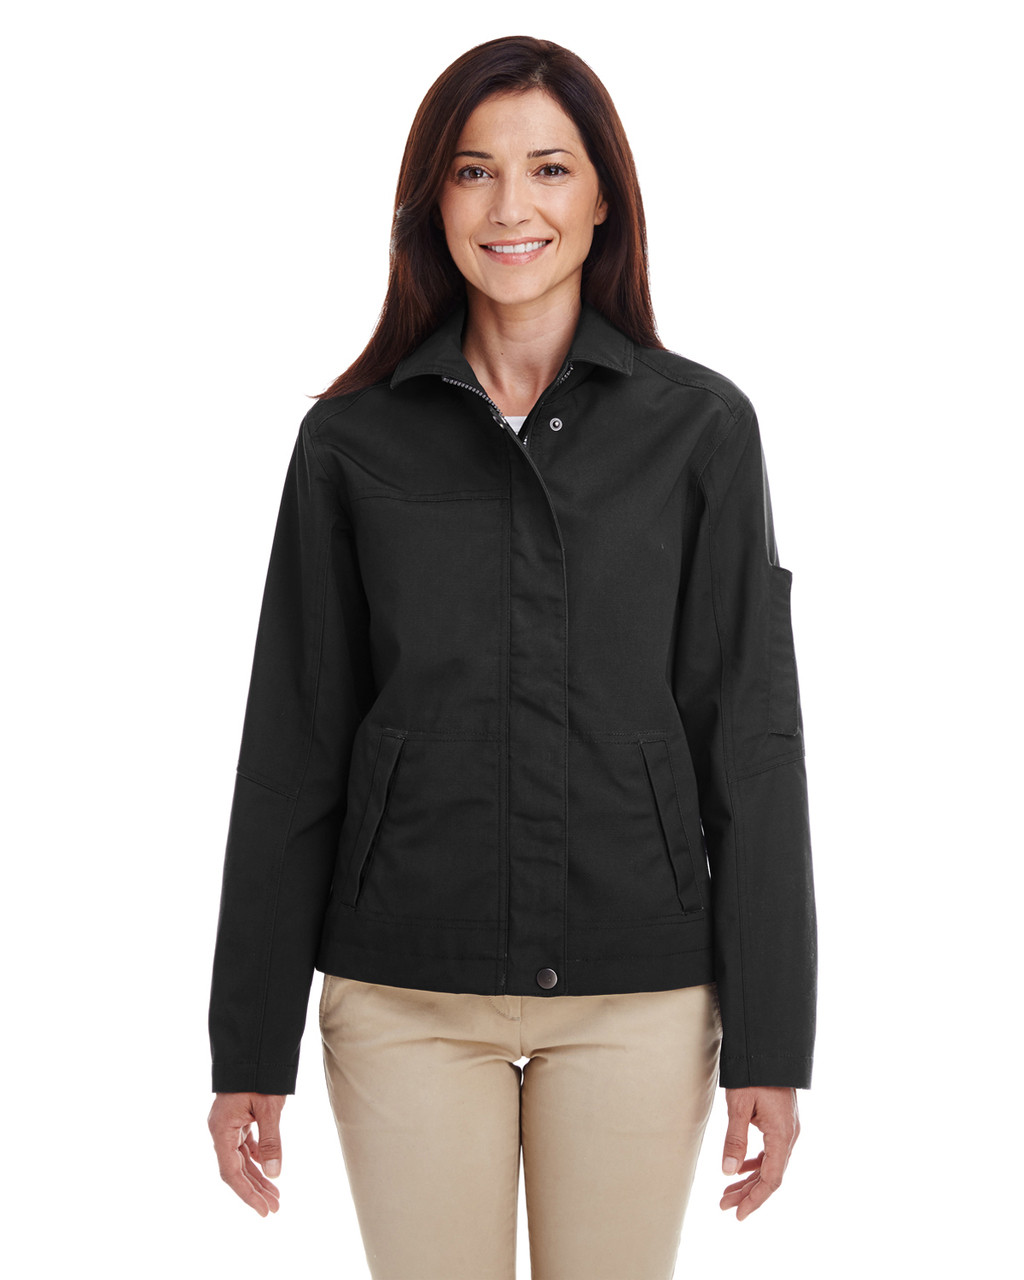 Black - M705W Harriton Ladies' Auxiliary Canvas Work Jacket